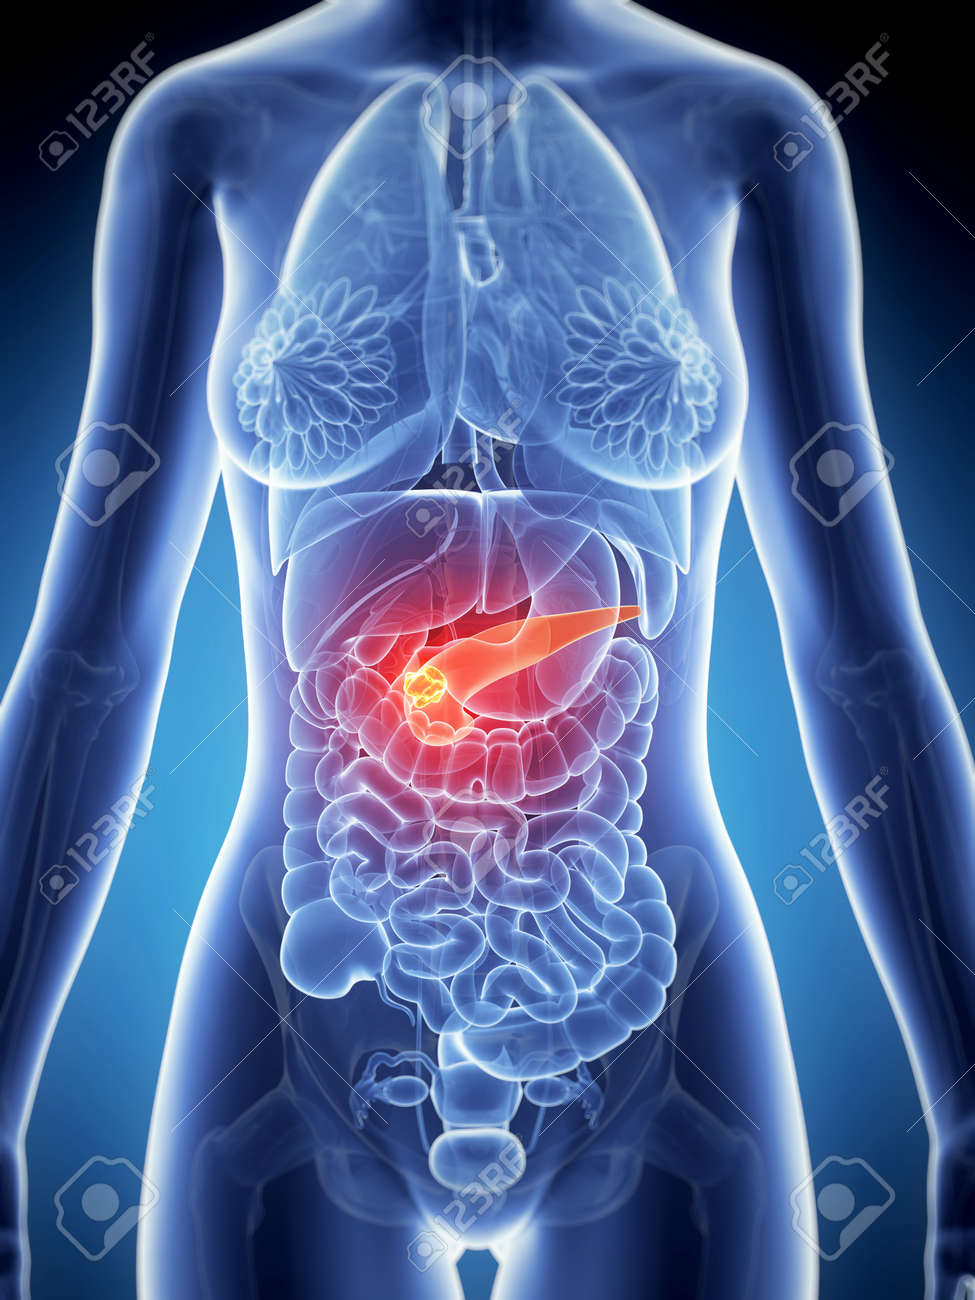 3d Rendered Illustration Of The Female Anatomy - Pancreas Cancer ...